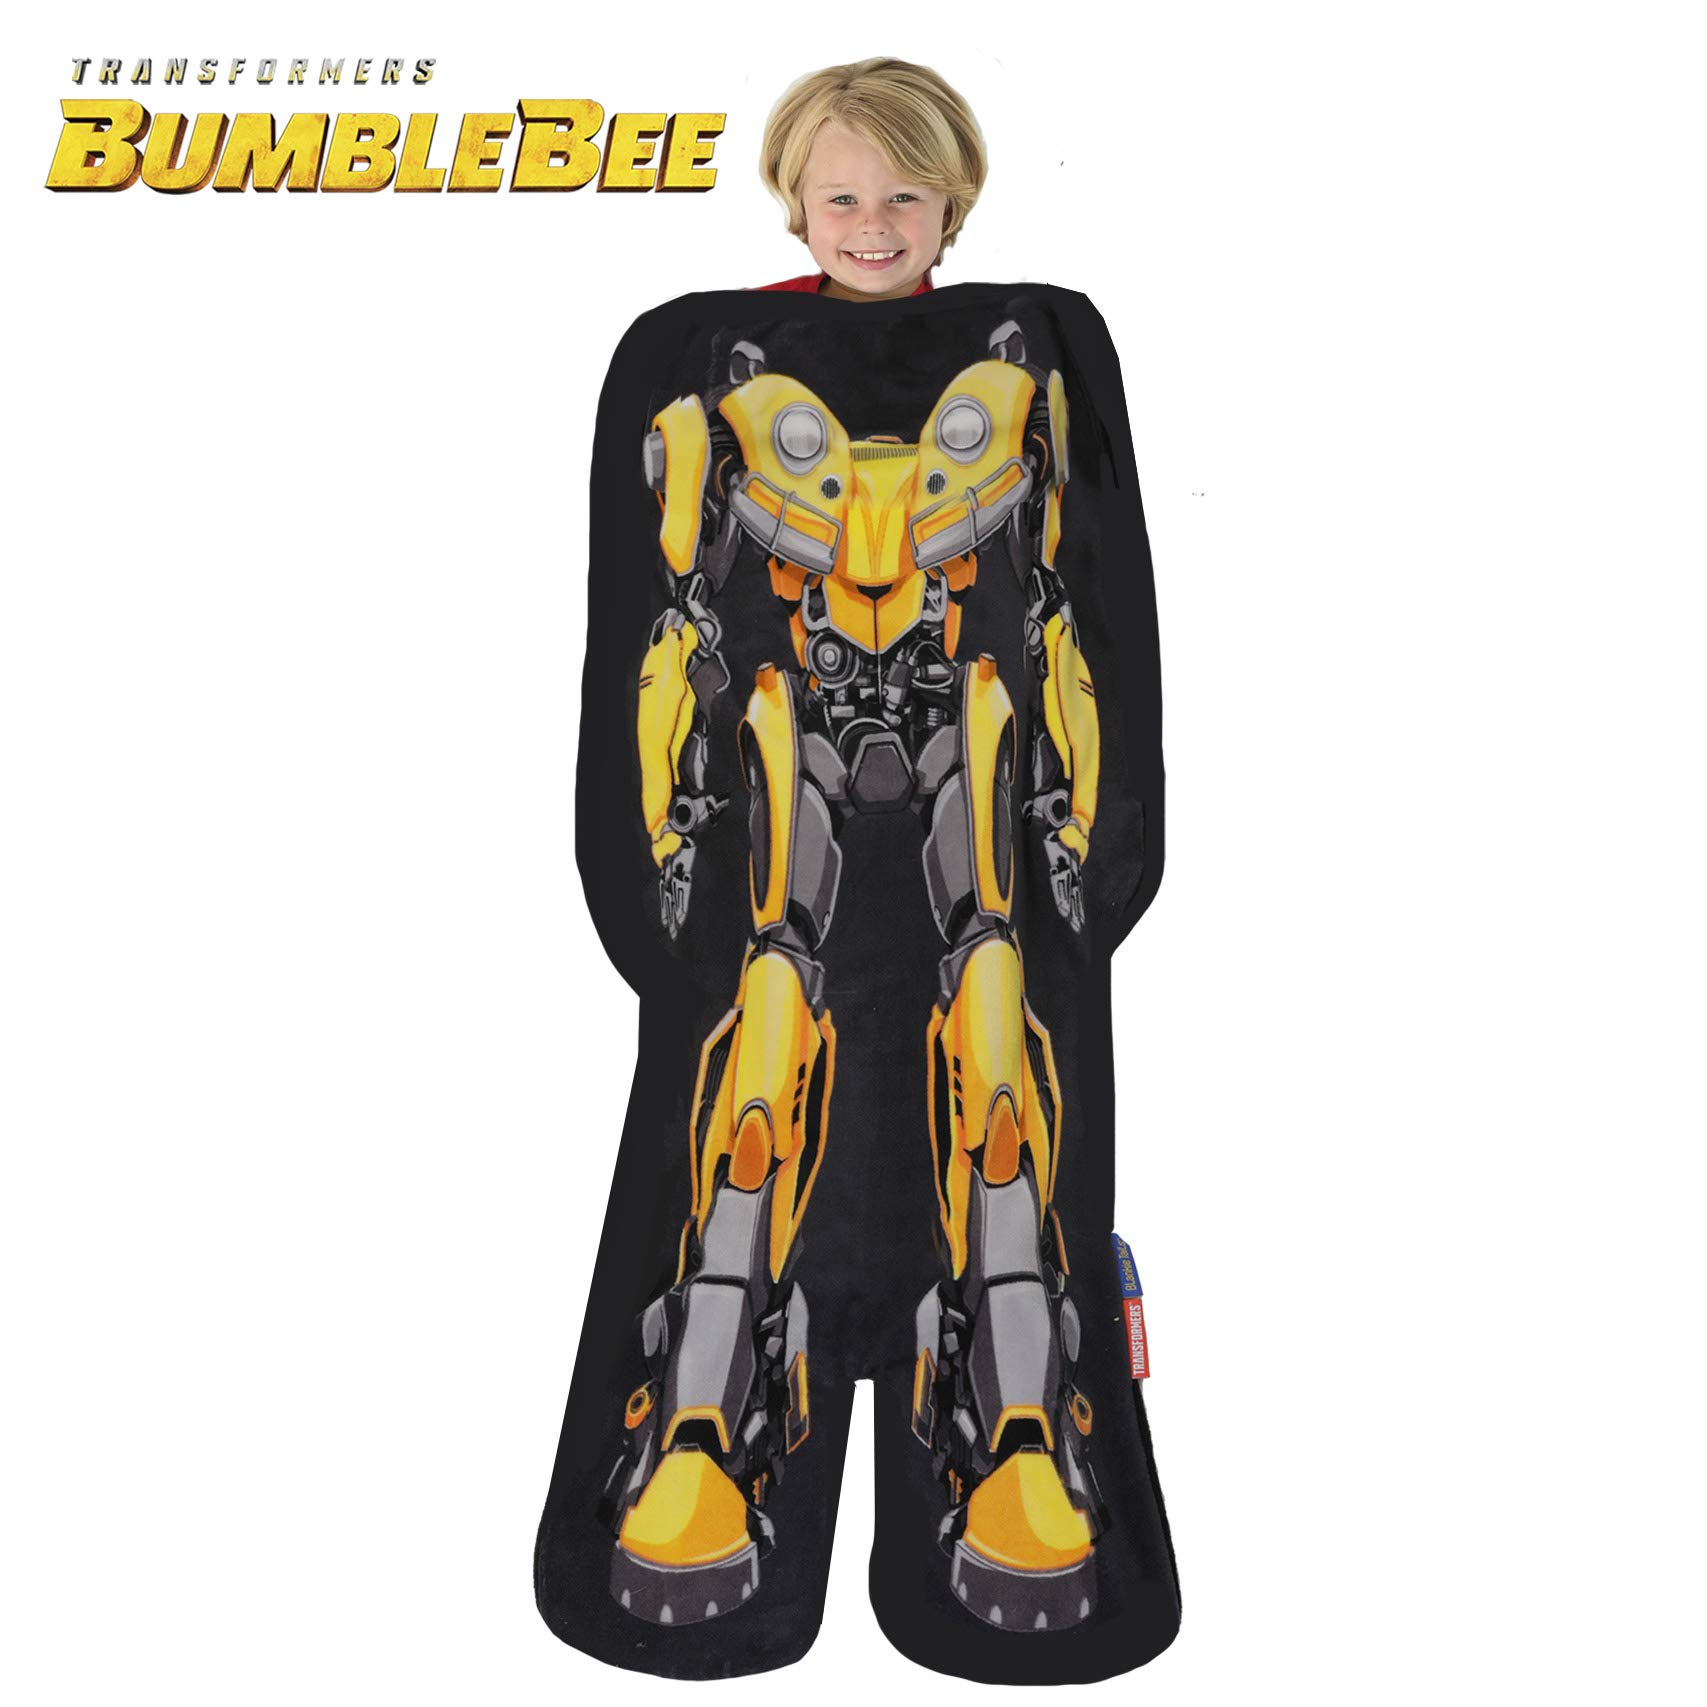 Blankie Tails Transformers Bumblebee The Movie Shaped Blanket Super Soft-Double Sided Minky Fleece Sized for Kids- Climb Inside This Cozy Wearable Blanket by Blankie Tails